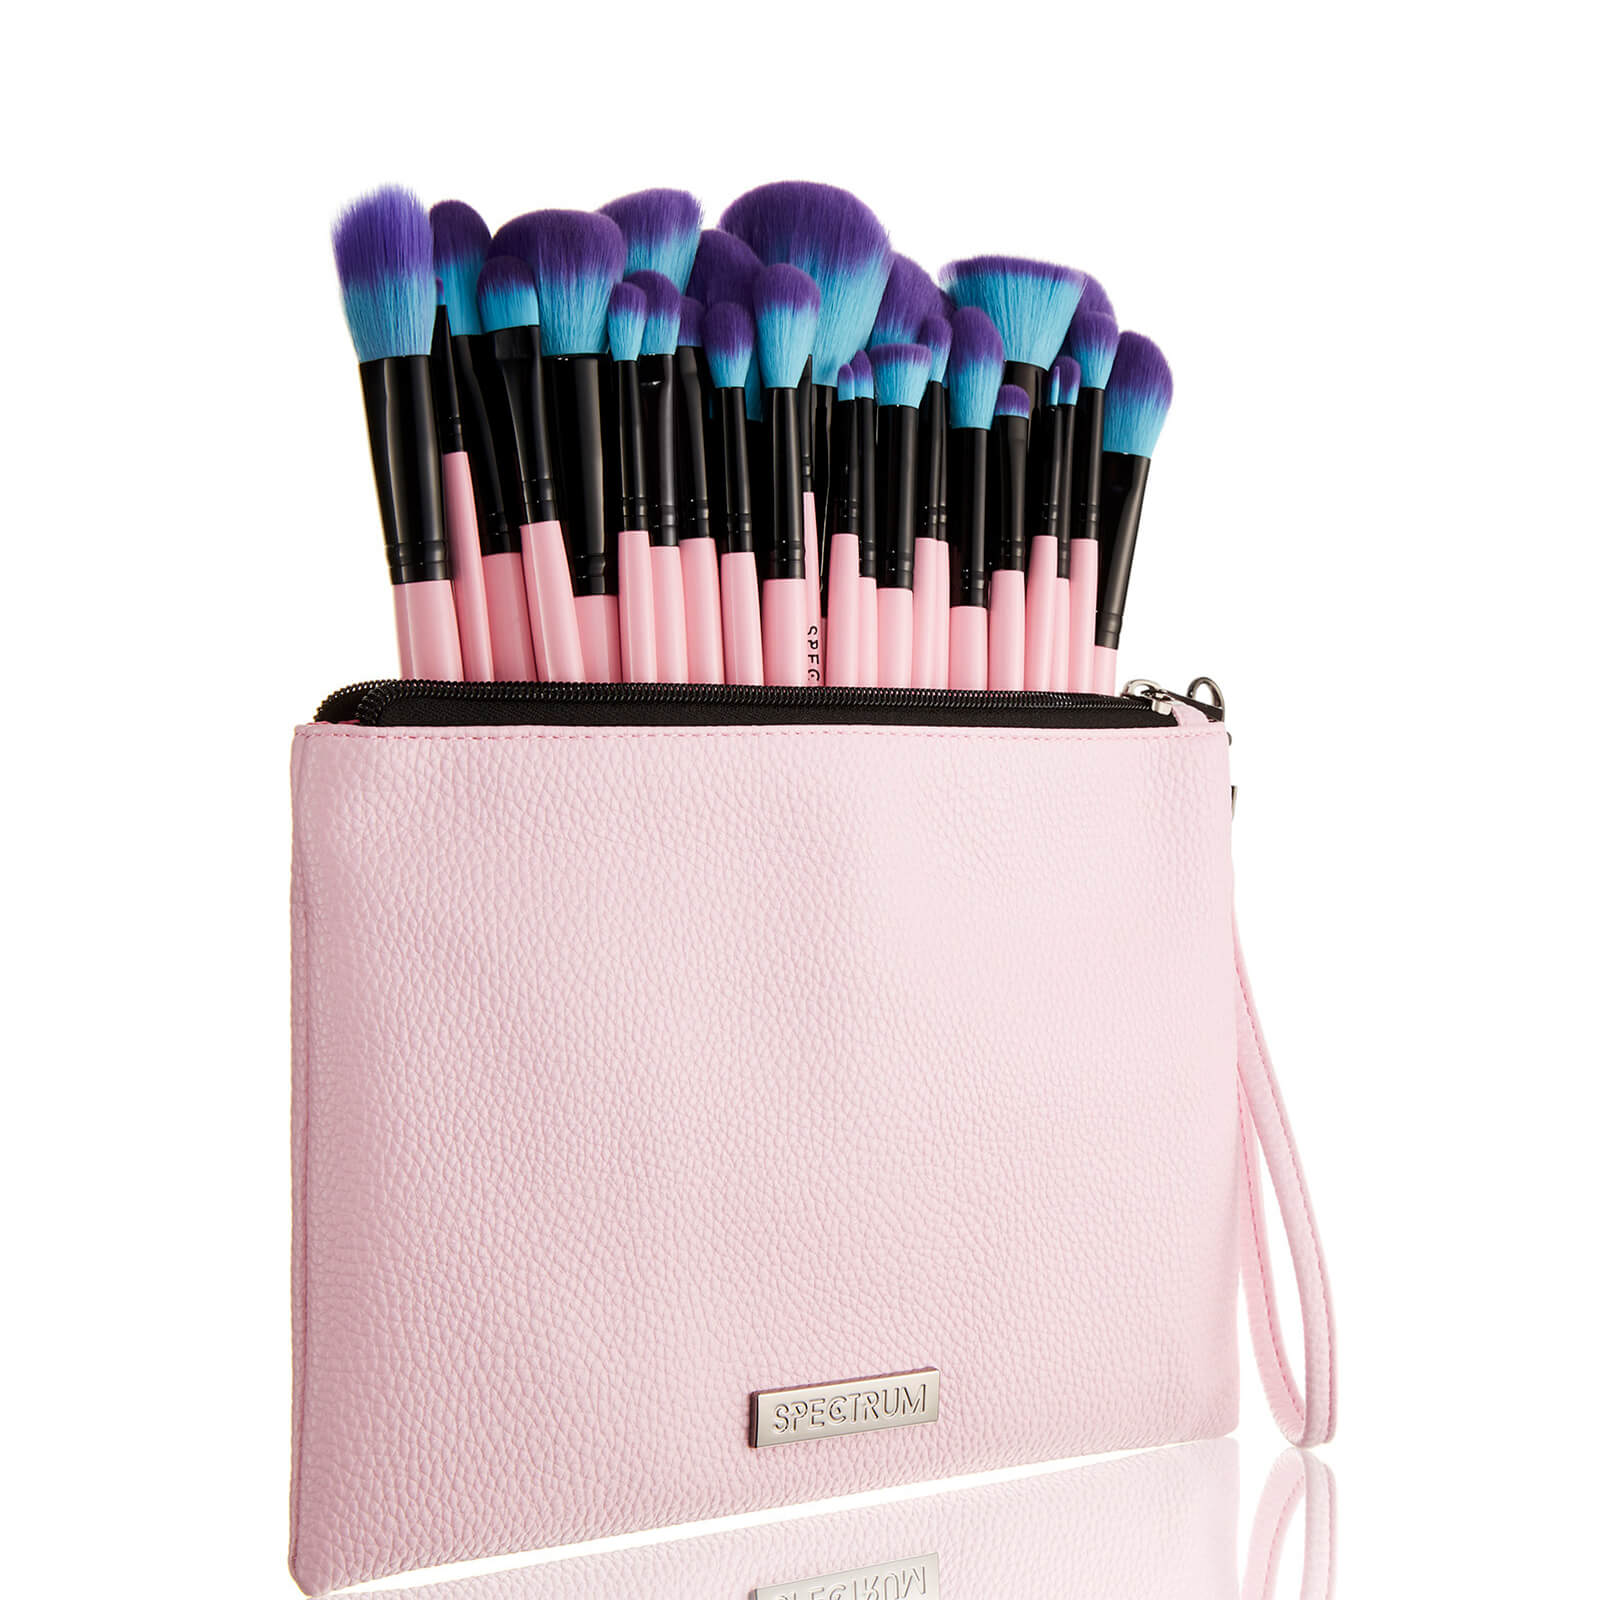 Spectrum Collections Millennial Pink 30 Piece Set with Pouch